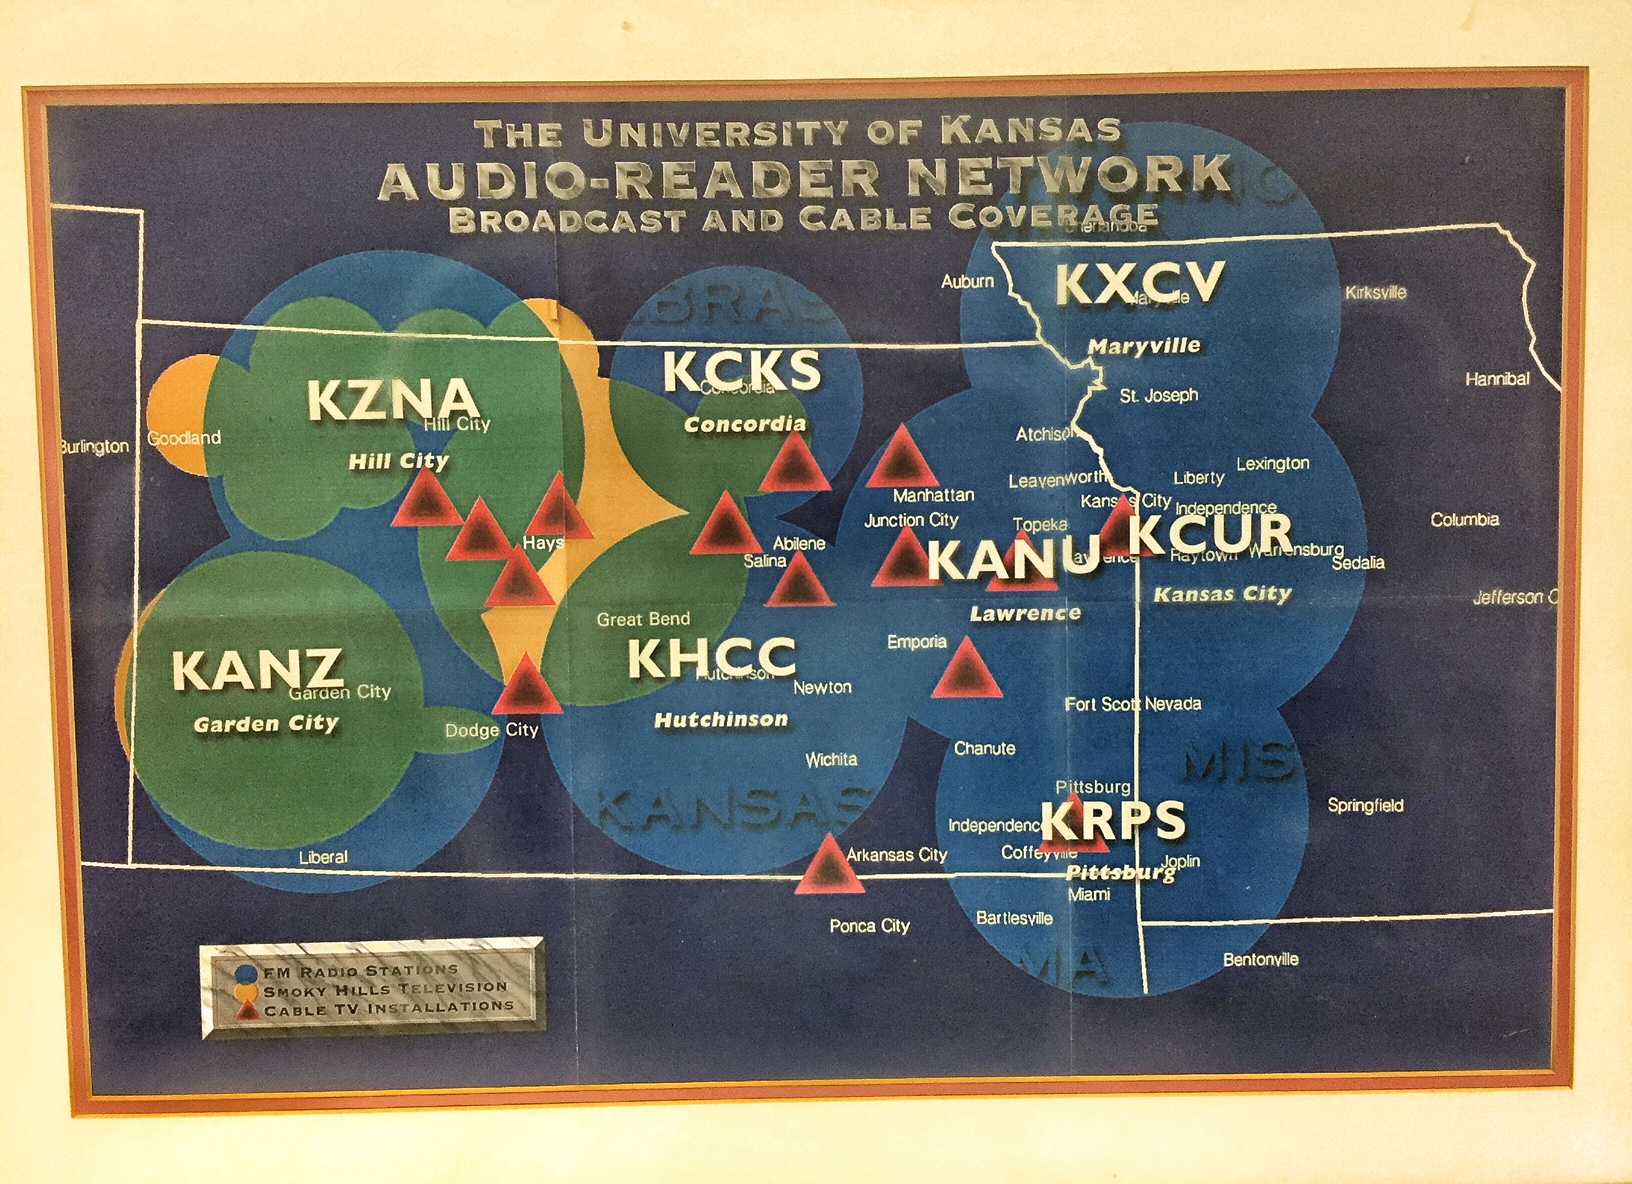 Map of Audio-Reader's service area, which includes most of Kansas and portions of surrounding states. (Photo by J. Schafer)